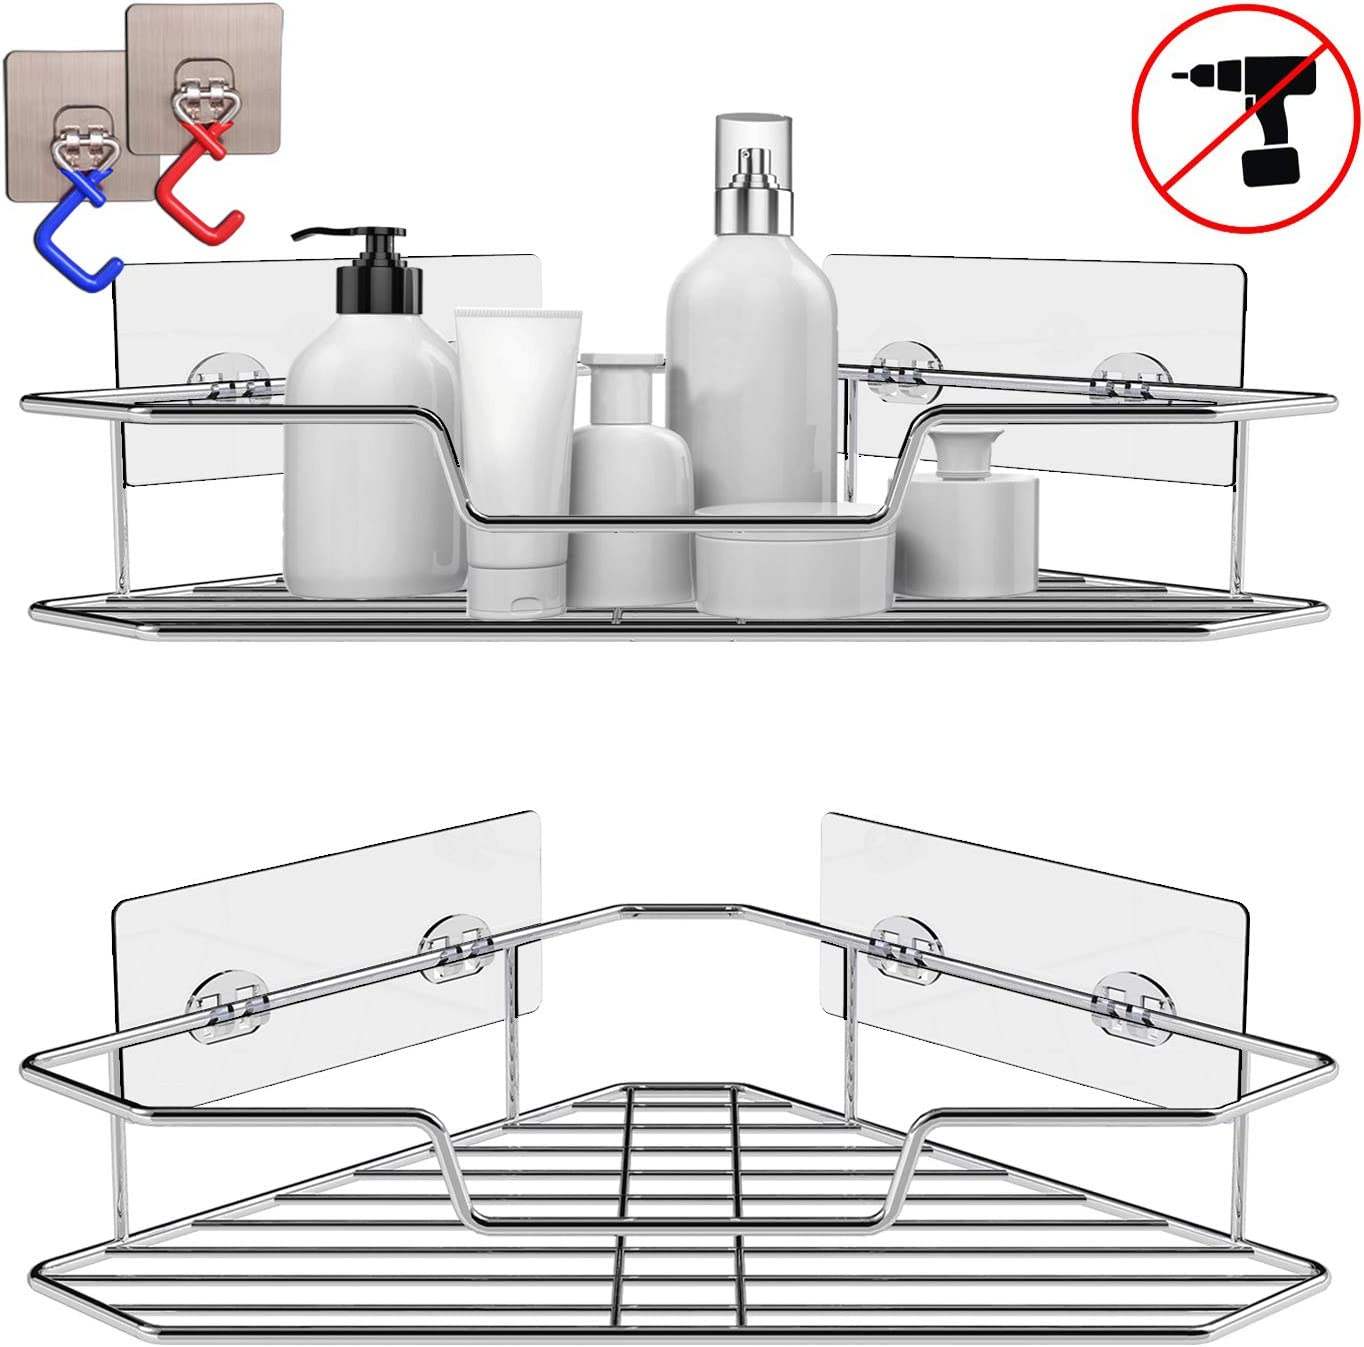 Soft Digits 2-Pack Corner Shower Caddy, Extra Mop Clip 2Pcs, 304 Stainless Steel Wide Space Shower Shelf with Adhesive, Hanging Storage Organizer Strong and Sturdy for Bathroom Kitchen